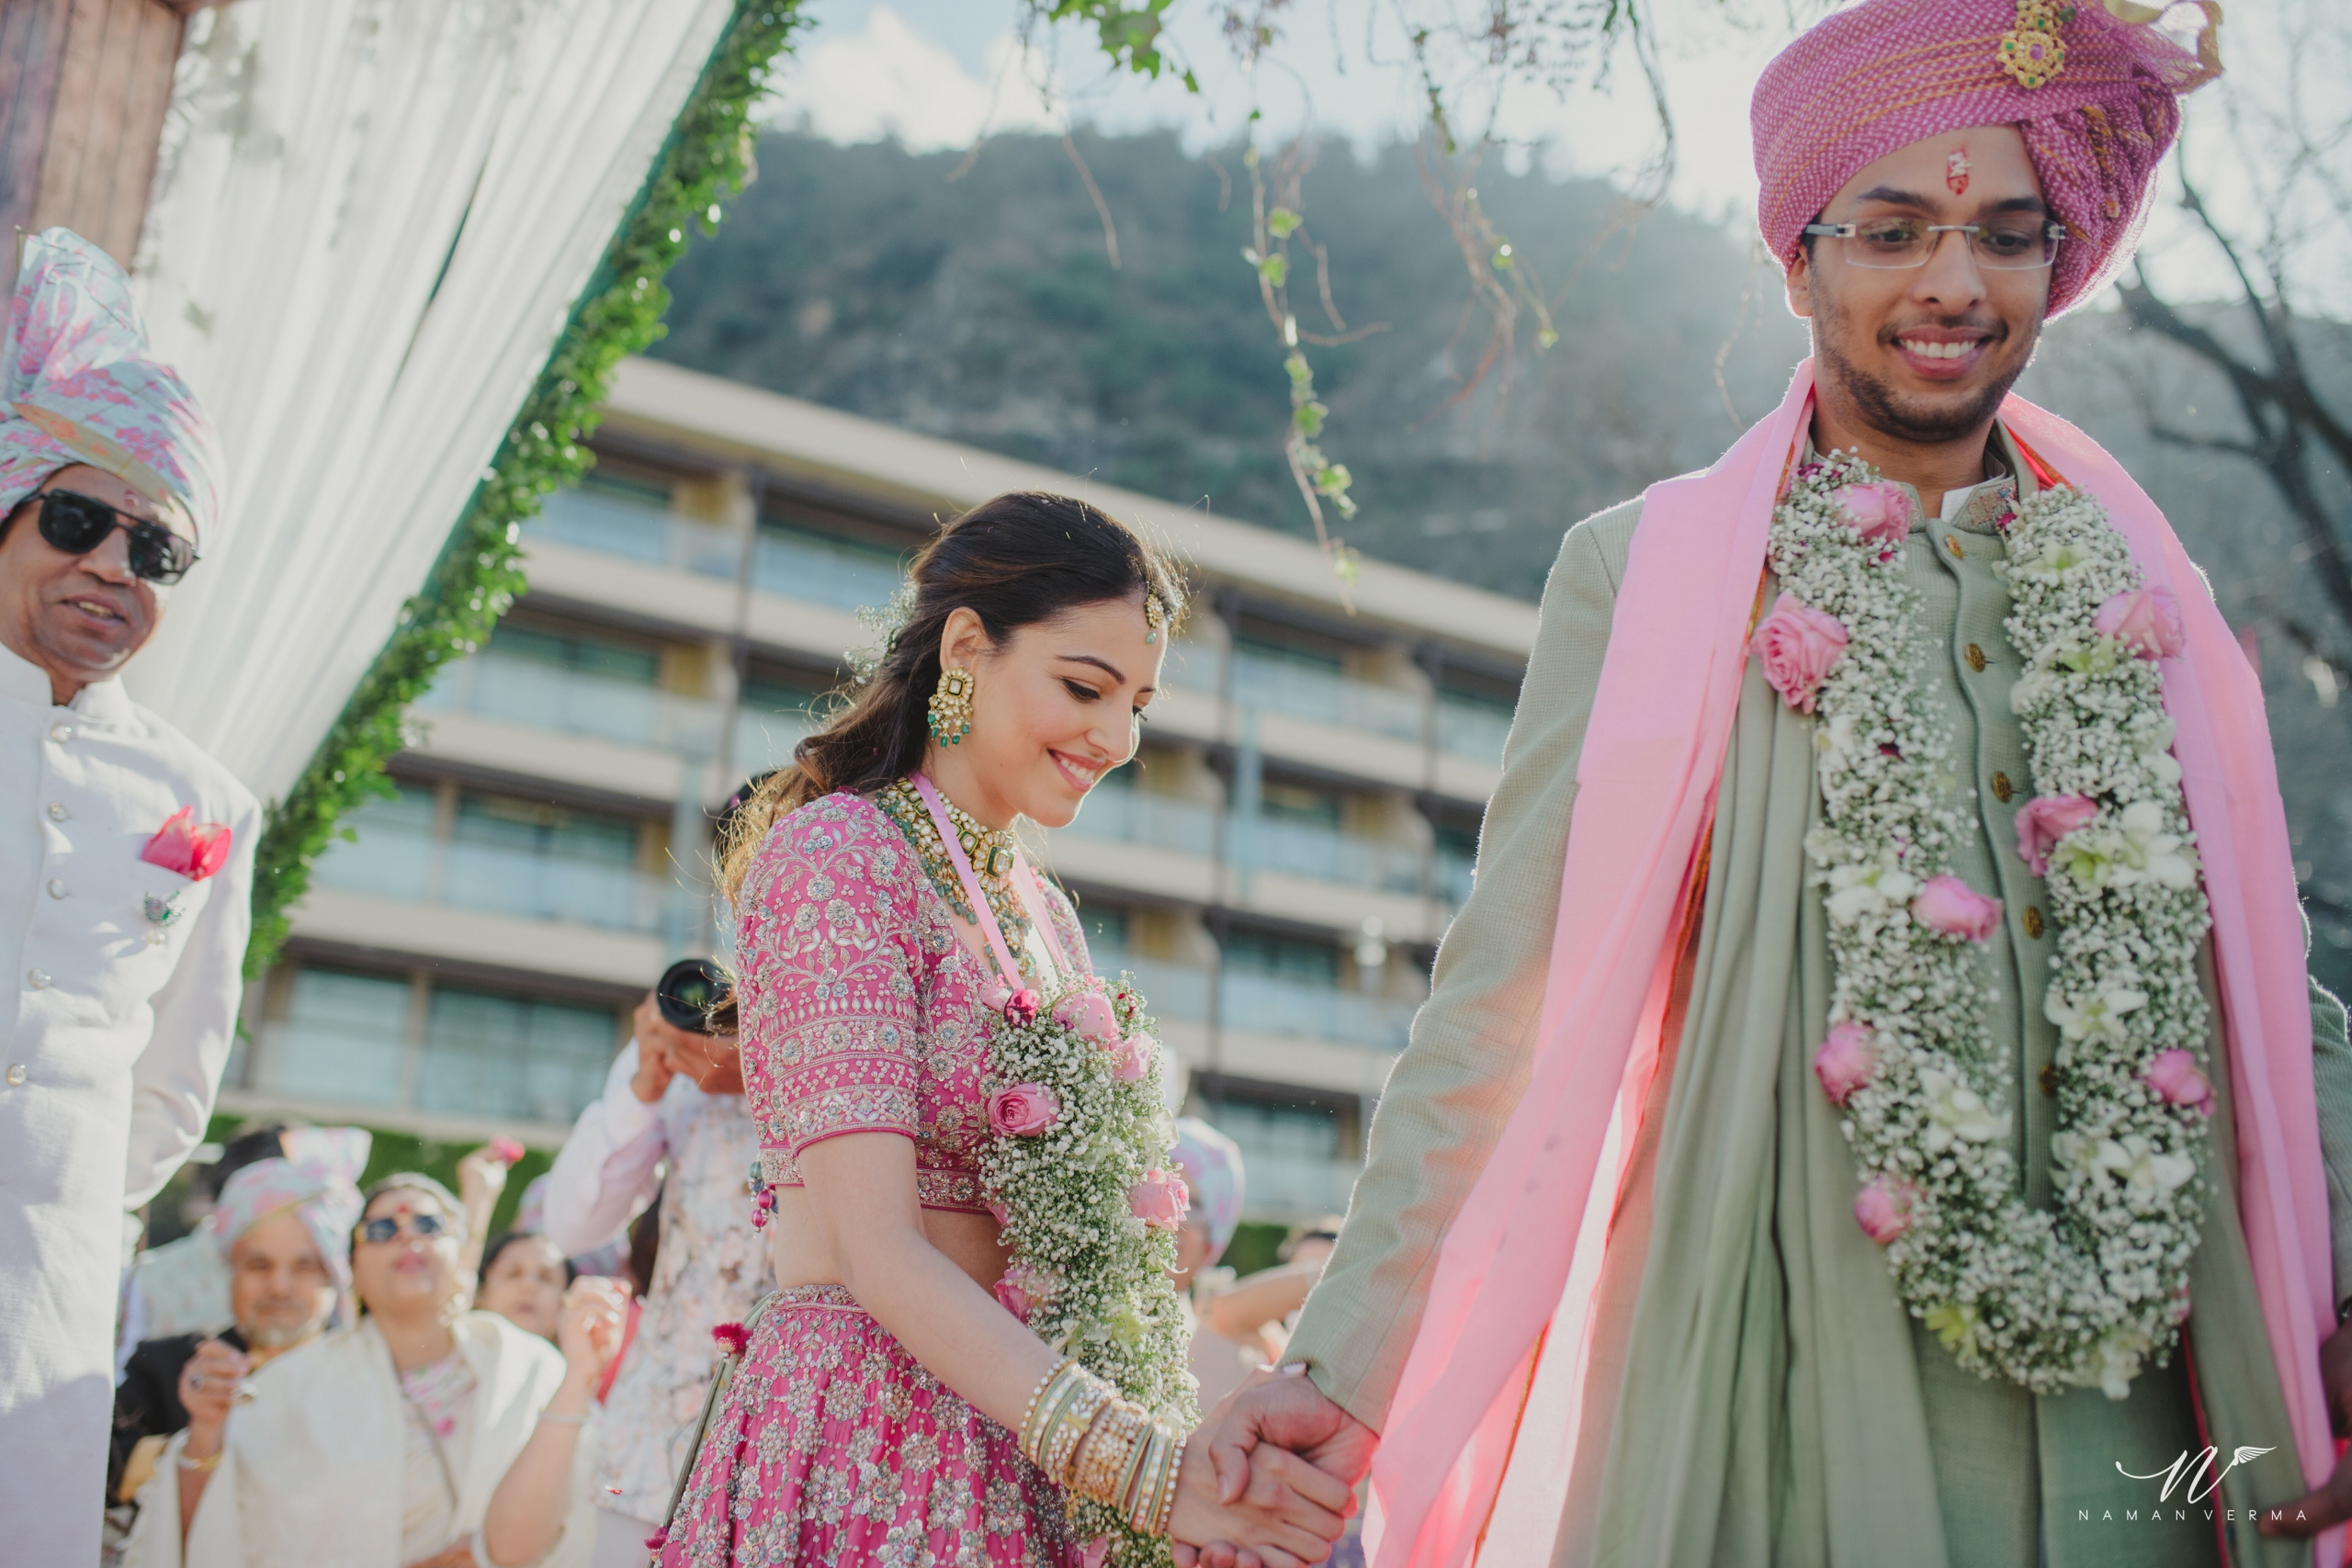 Anita Dongre's son, Yash Dongre's intimate Mussoorie wedding